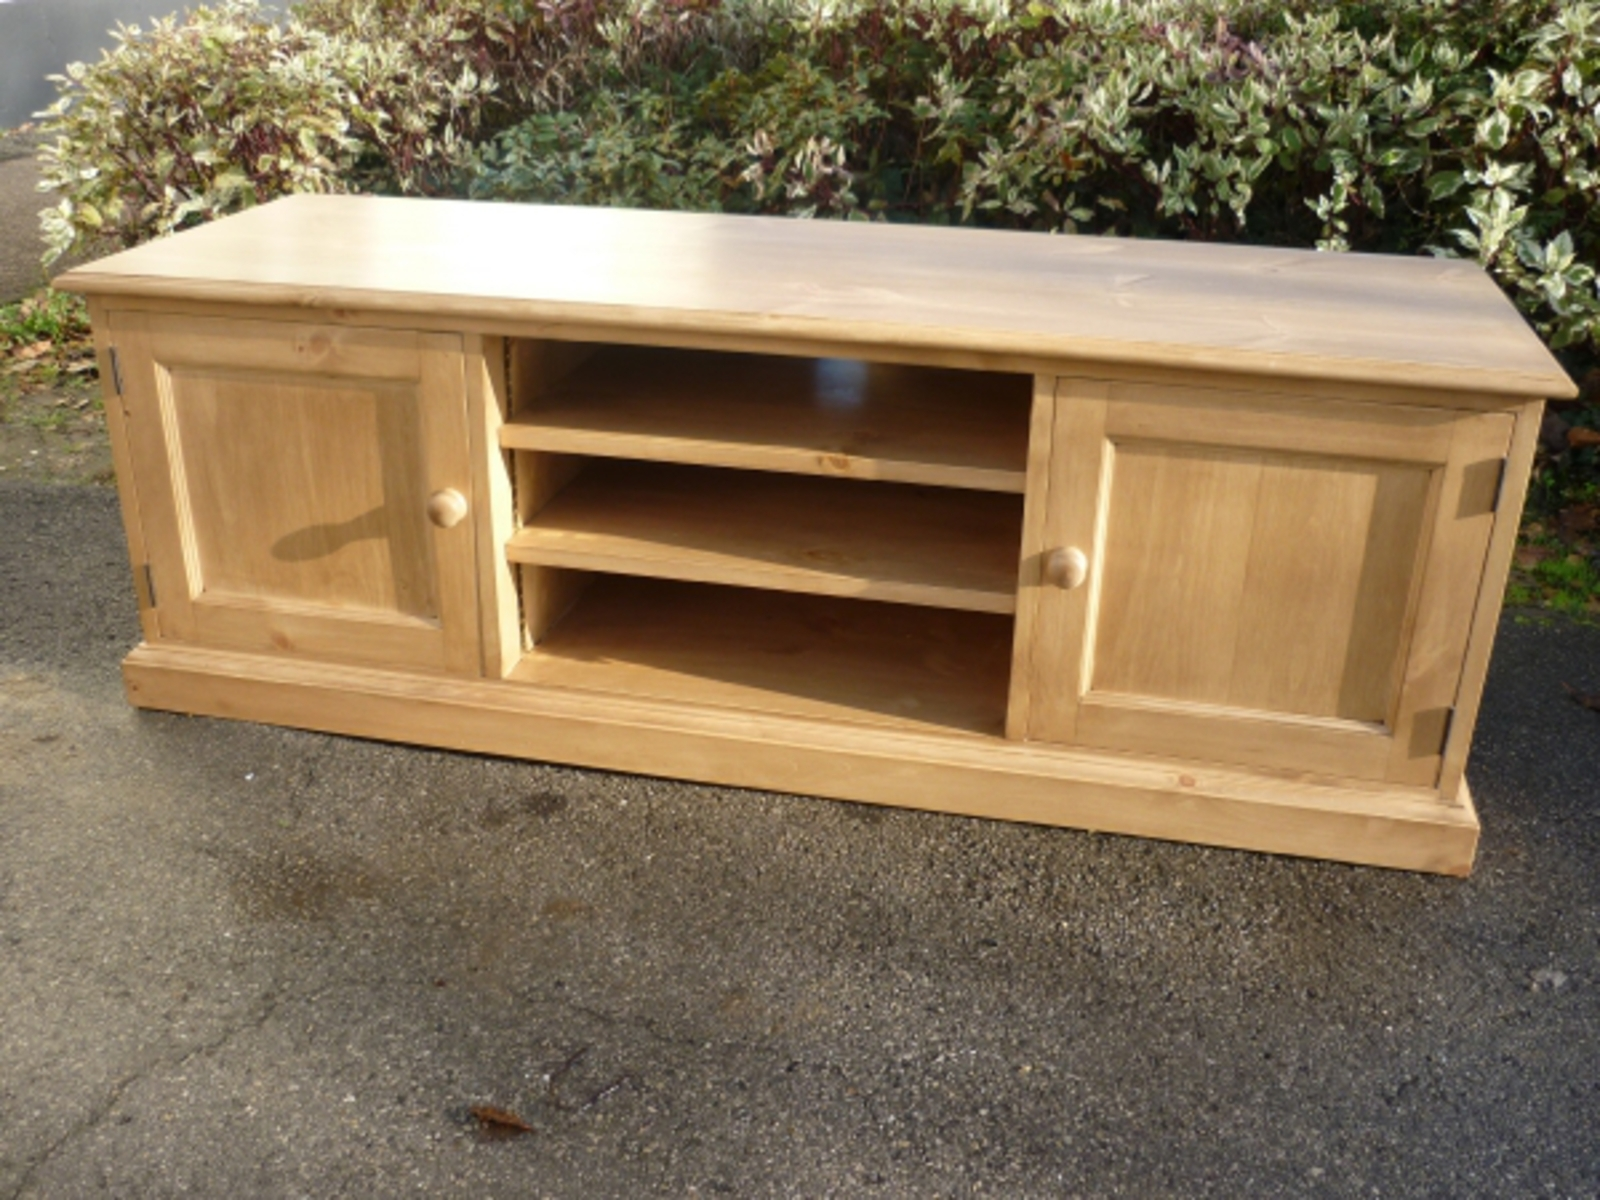 Tventertainment Stands Pine Oak Painted And Bespoke Furniture Within Bespoke Tv Stands (View 15 of 15)